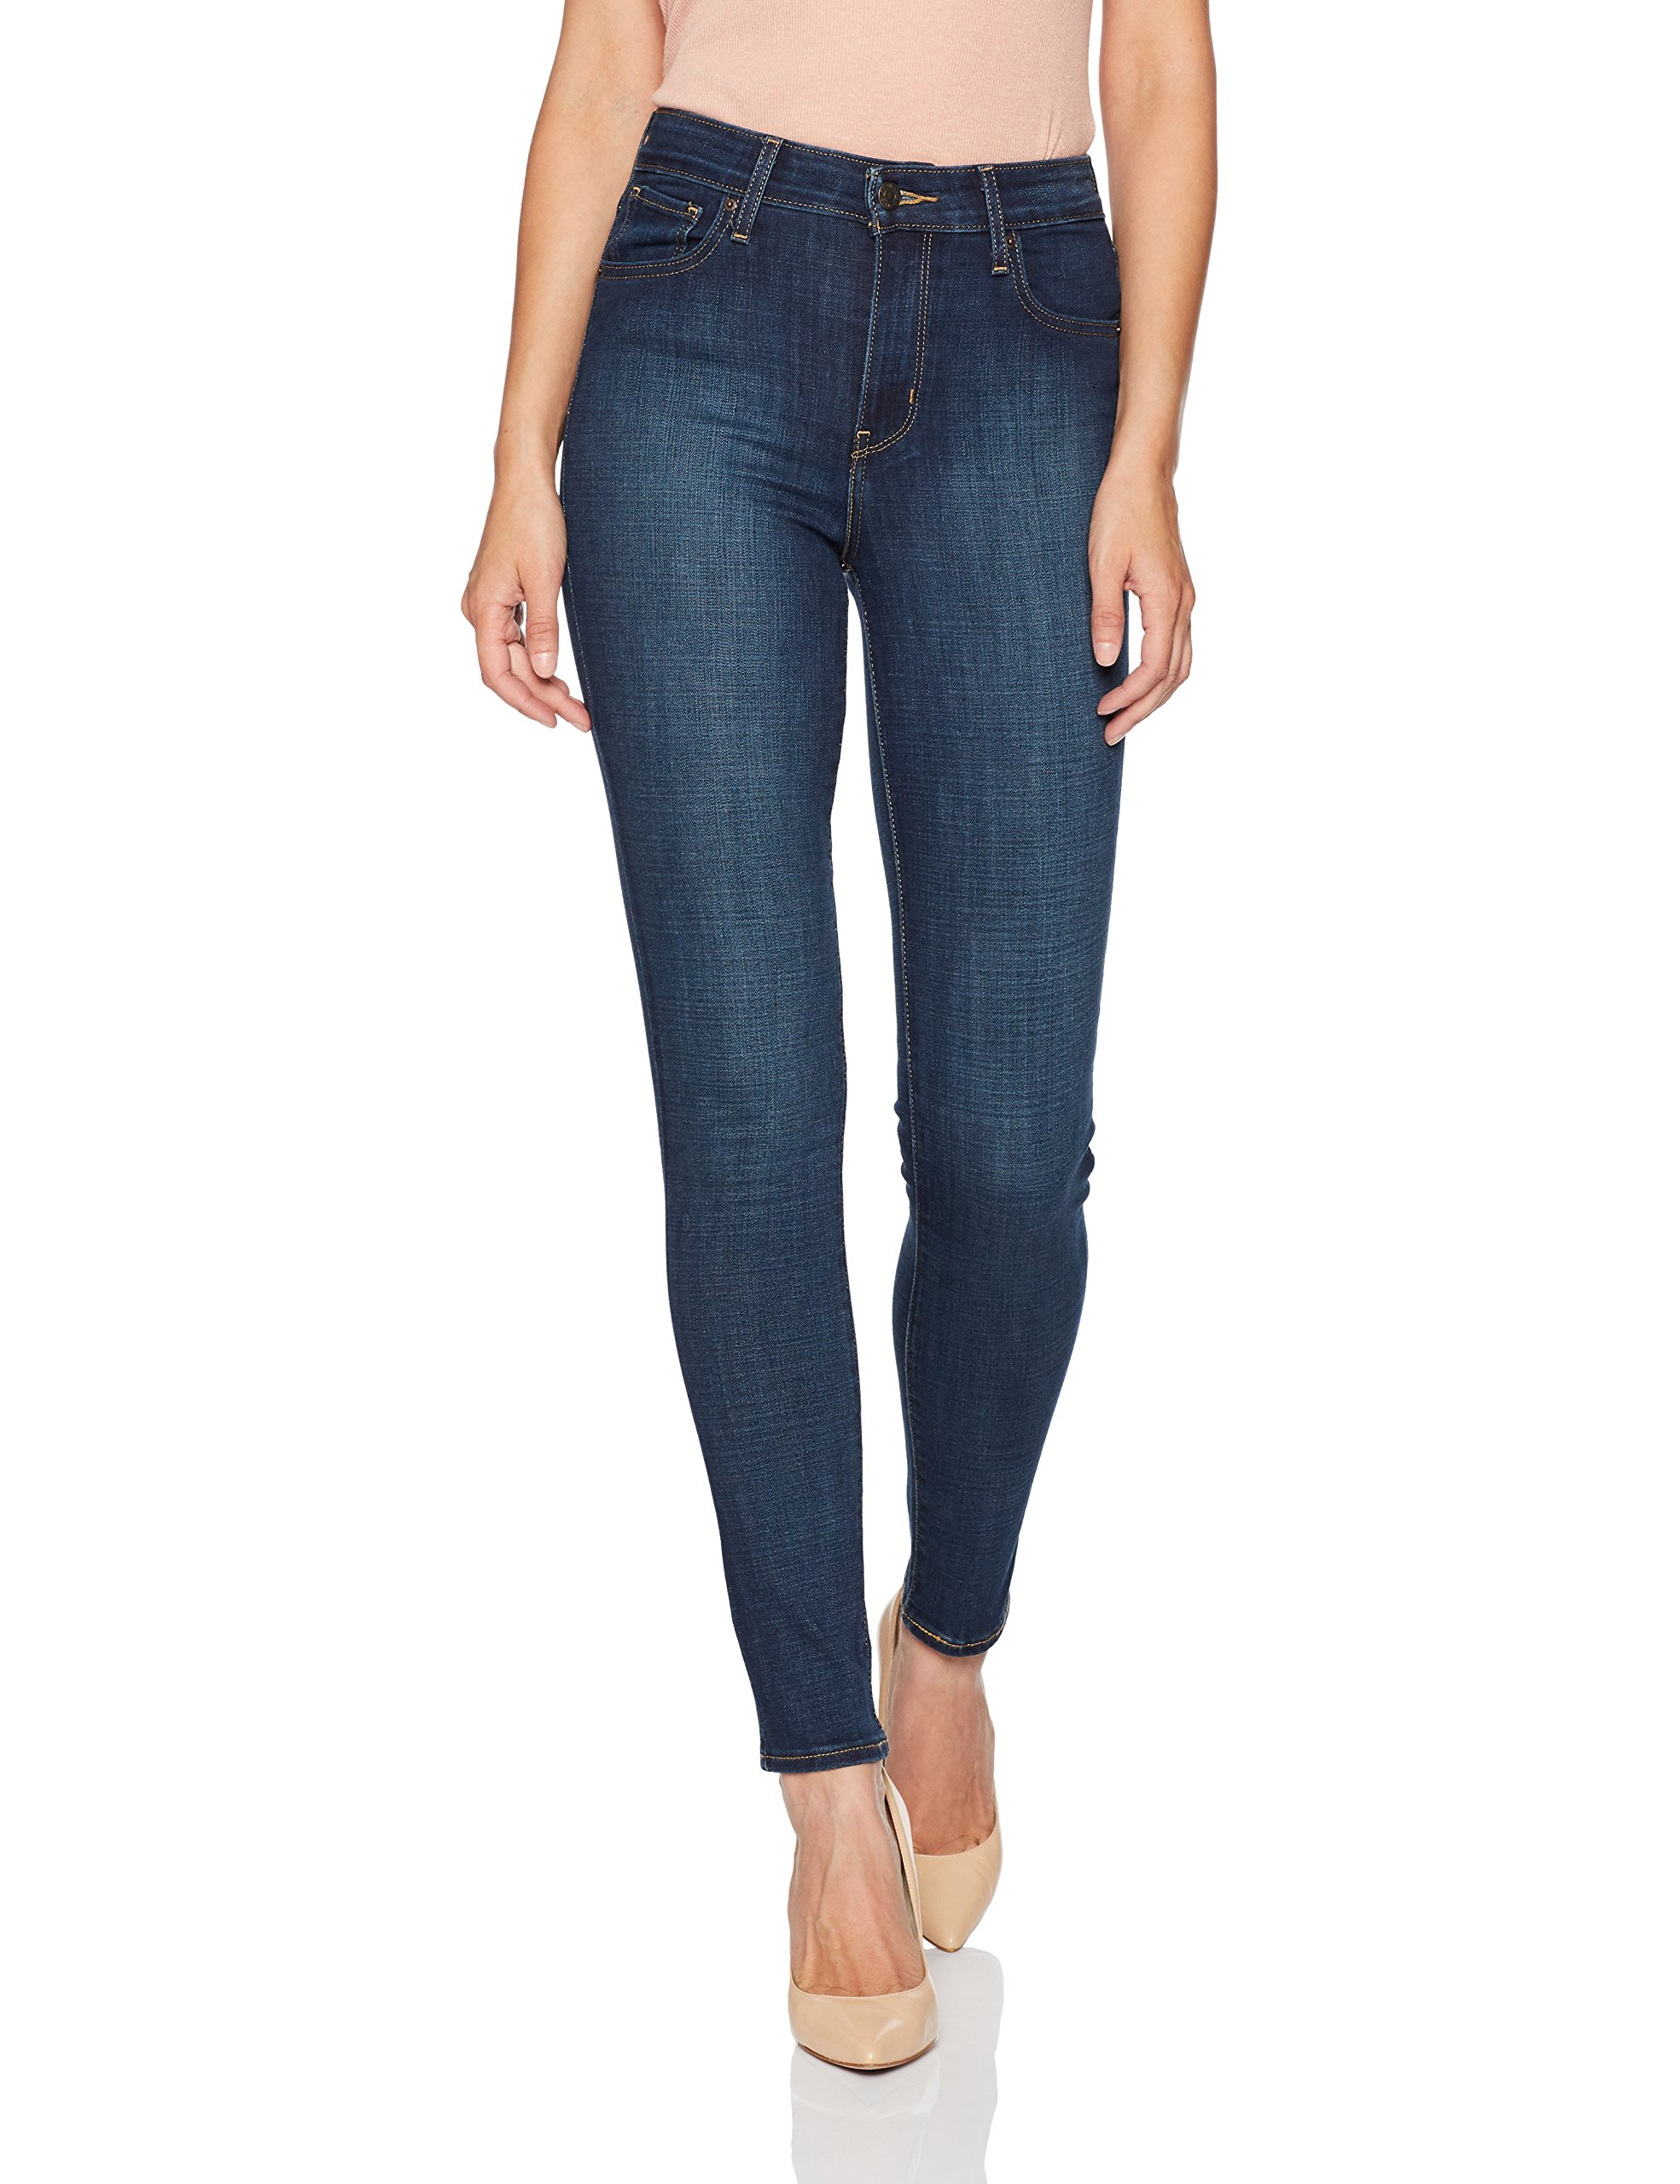 Levi's Women's 721 High Rise Skinny Jeans, Blue Story, 29 (US 8) R